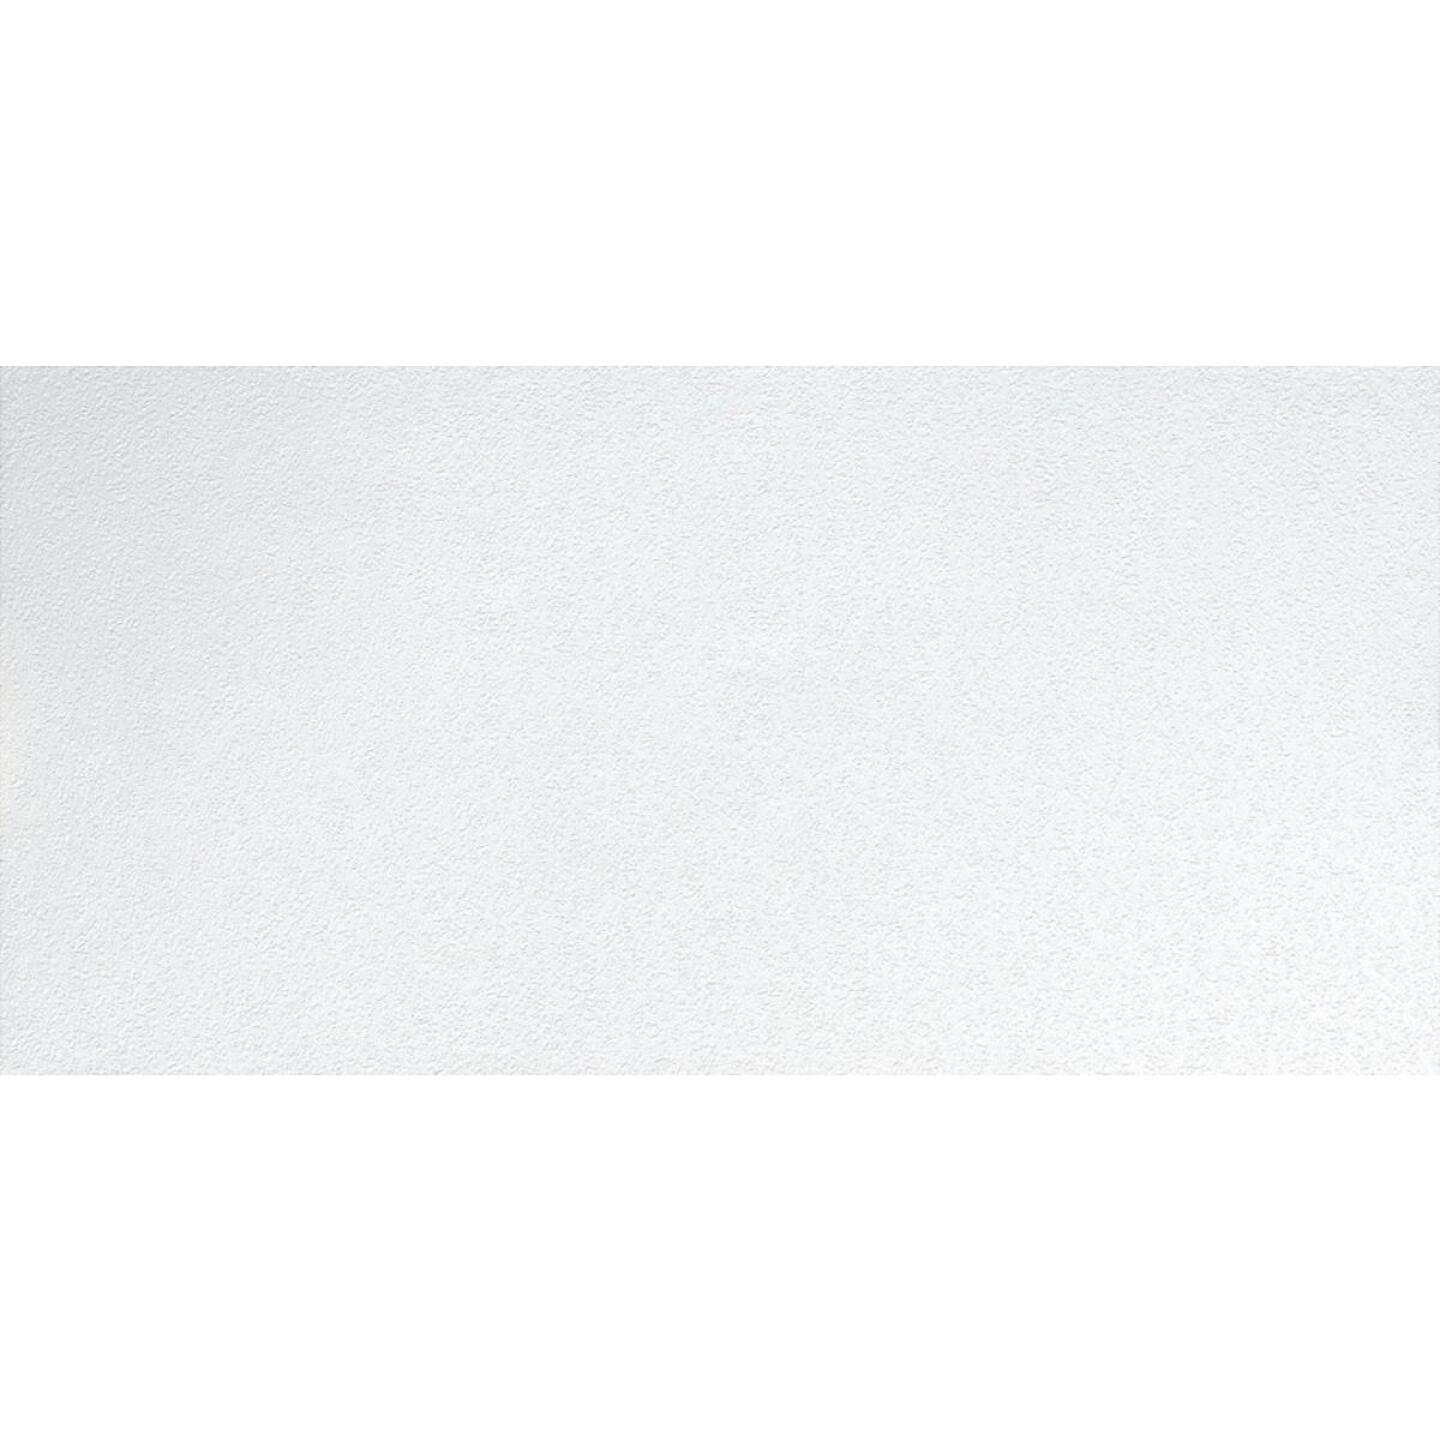 BP LifeStyle Fissured 2 Ft. x 4 Ft. White Wood Fiber Suspended Ceiling Tile (8-Count) Image 3